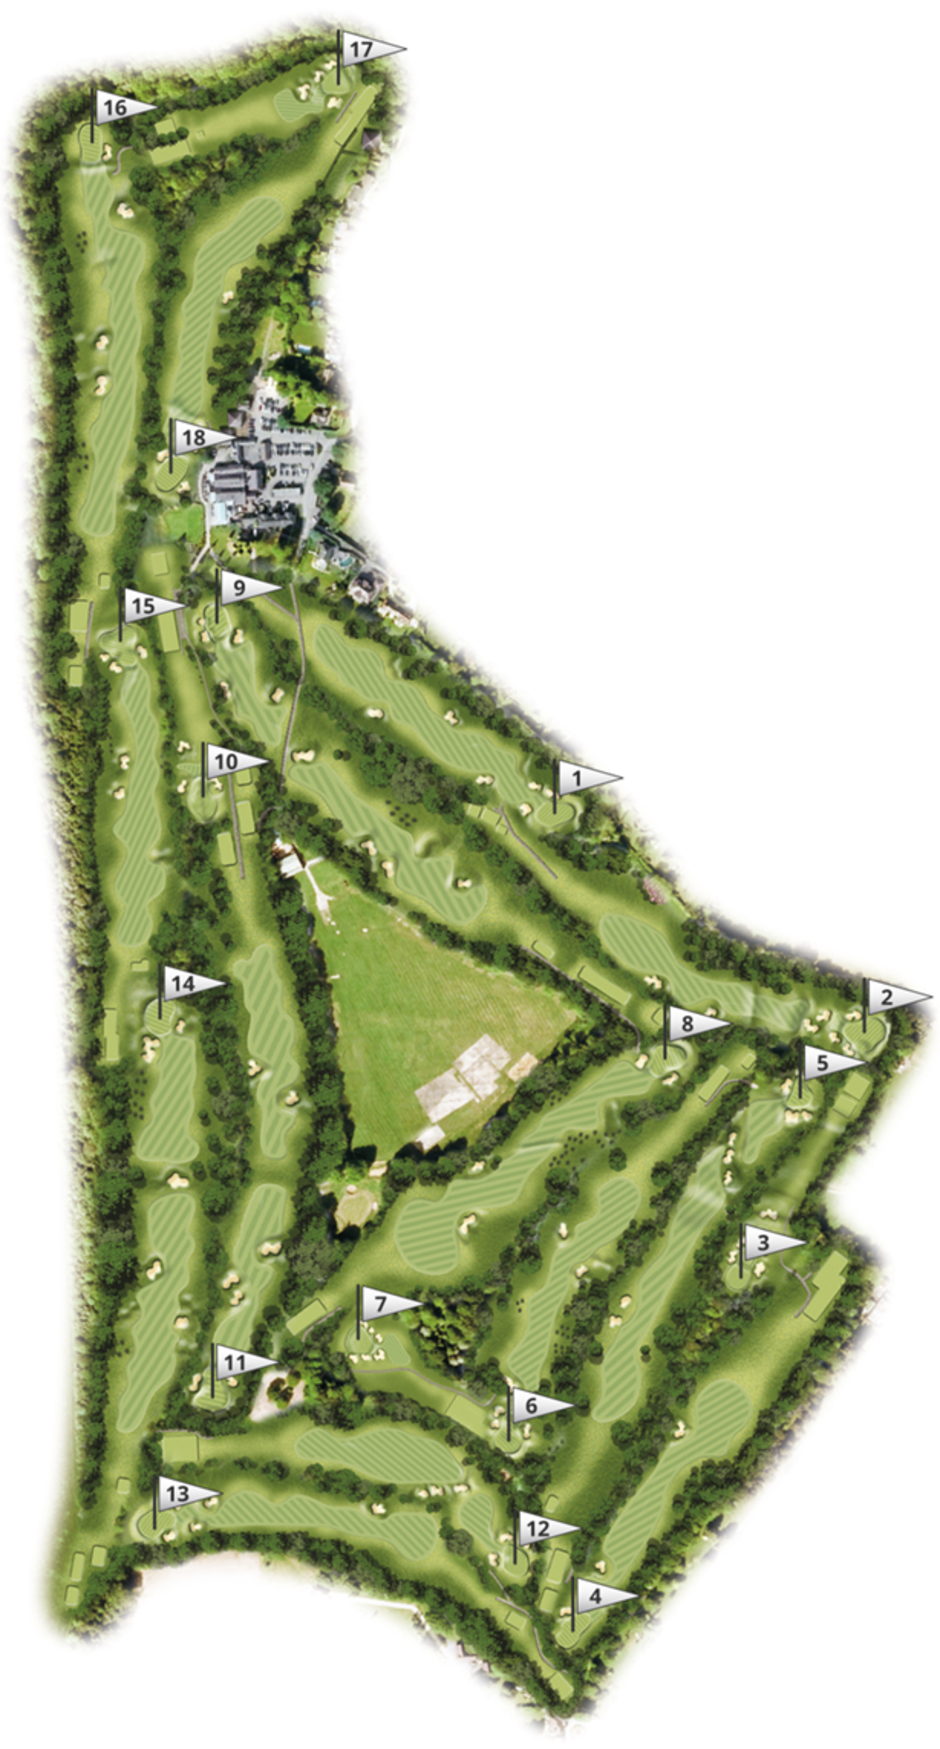 Overview of the course at Kingswood Golf and Country Club, Surrey.